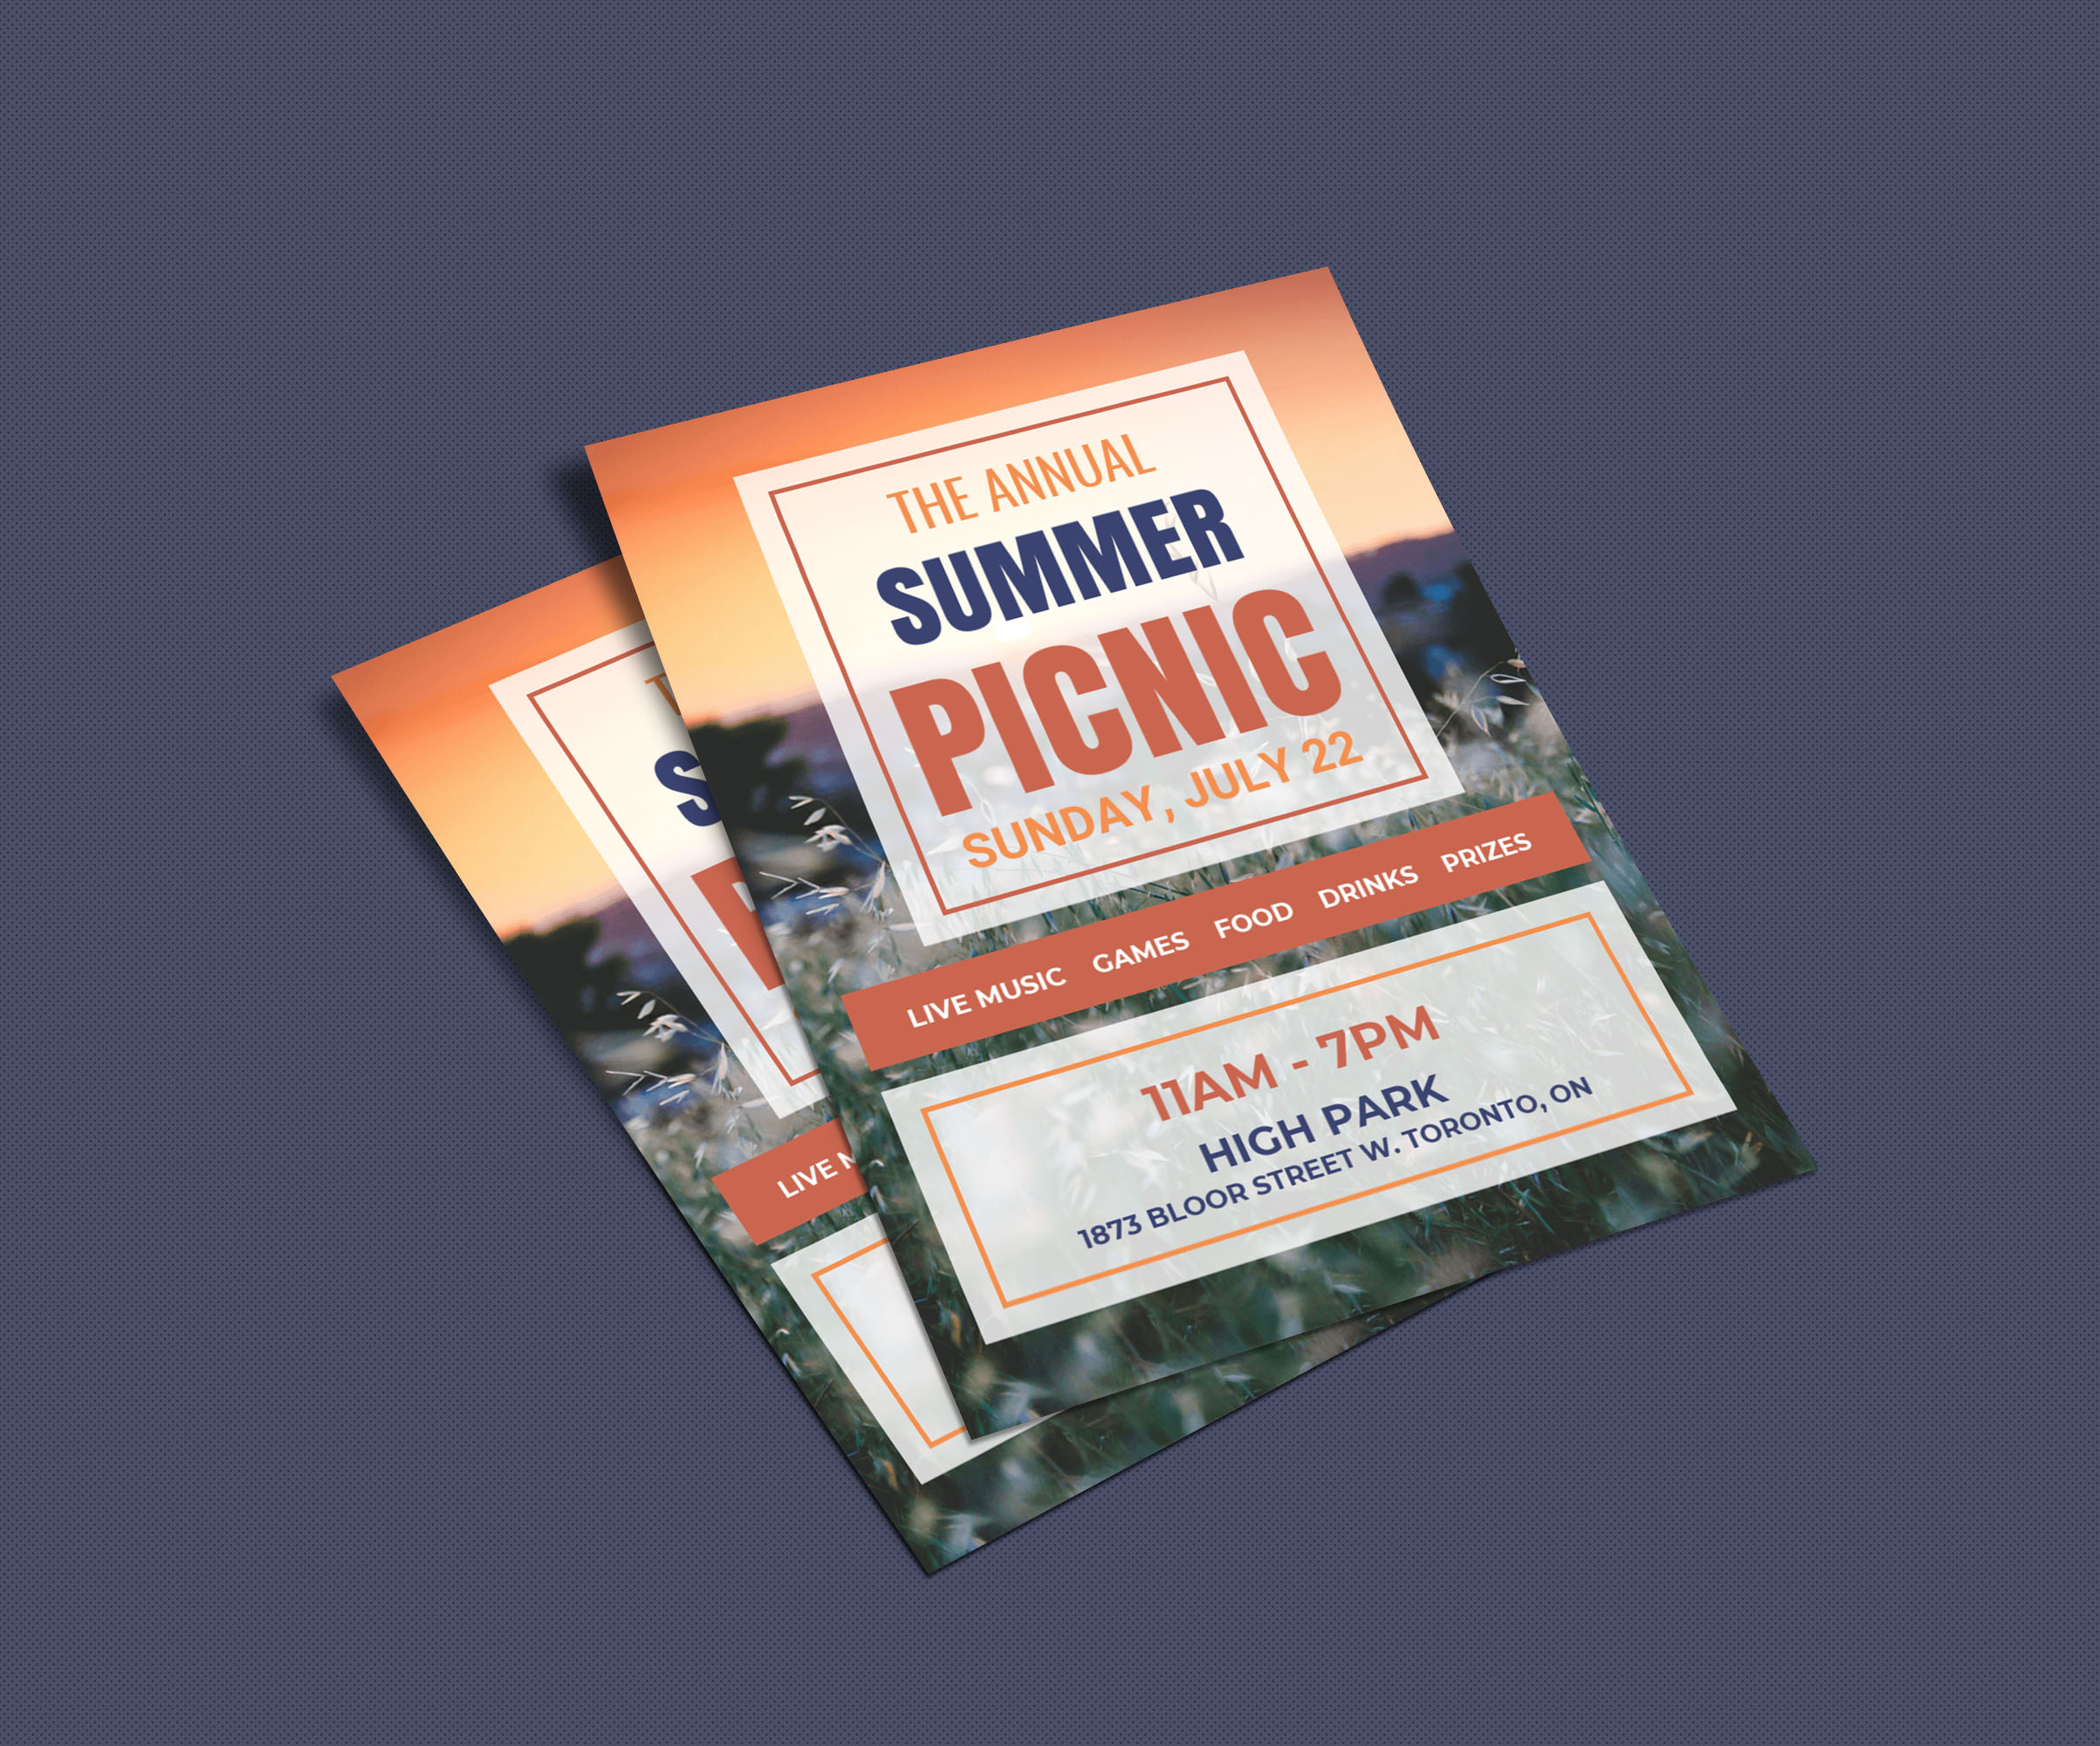 Colorful Square Picnic Event Flyer Idea